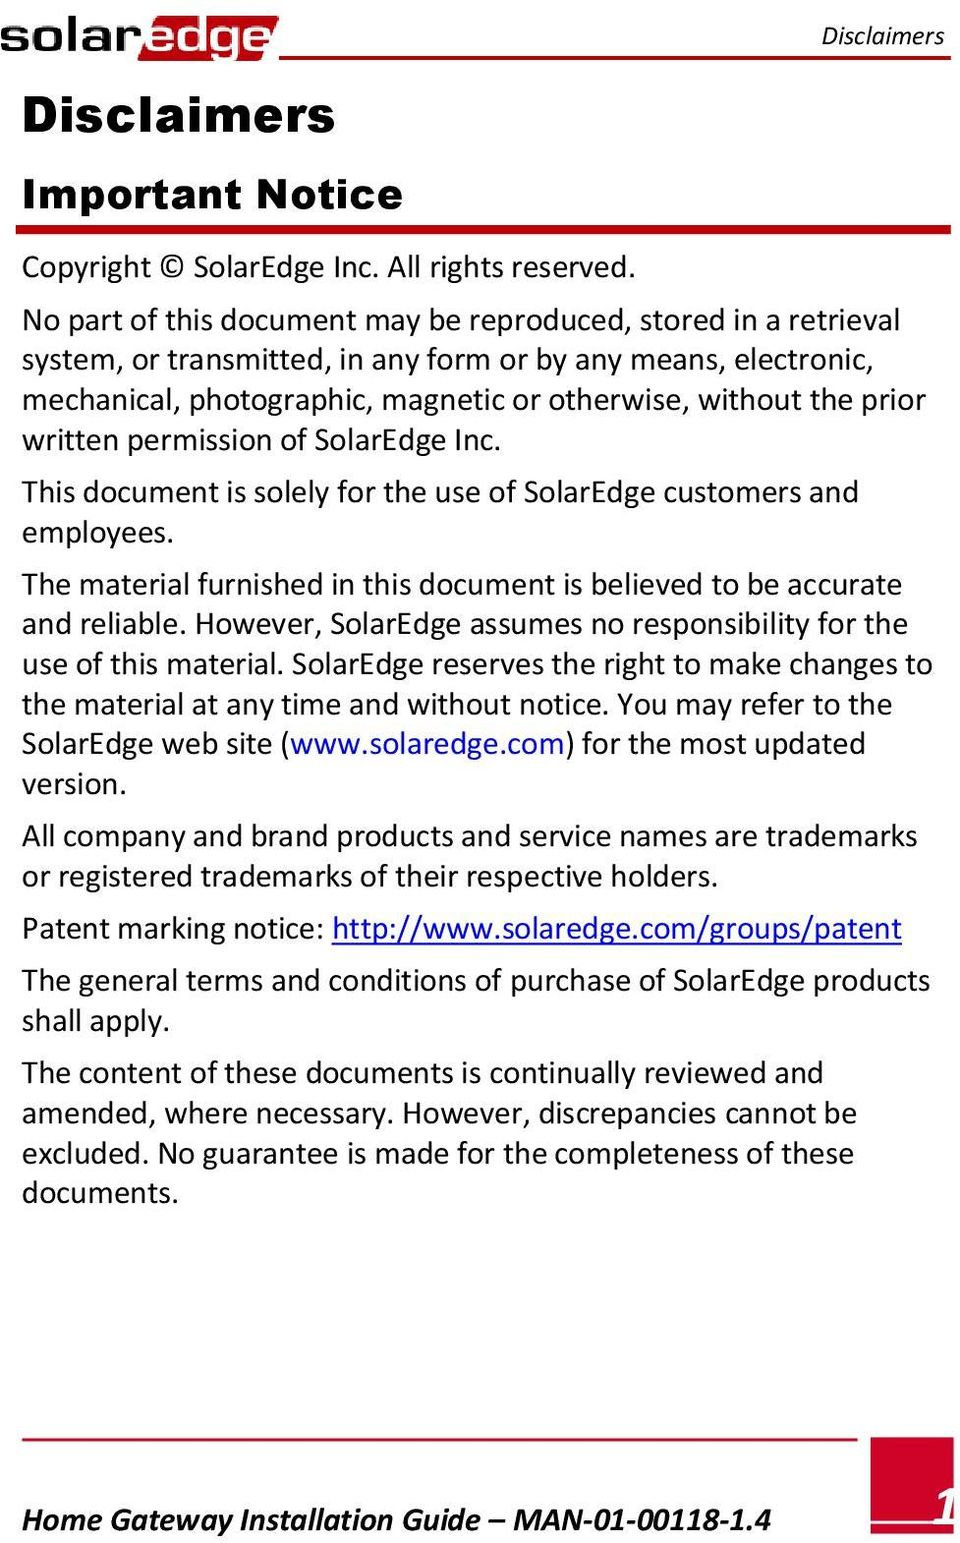 written permission of SolarEdge Inc. This document is solely for the use of SolarEdge customers and employees. The material furnished in this document is believed to be accurate and reliable.